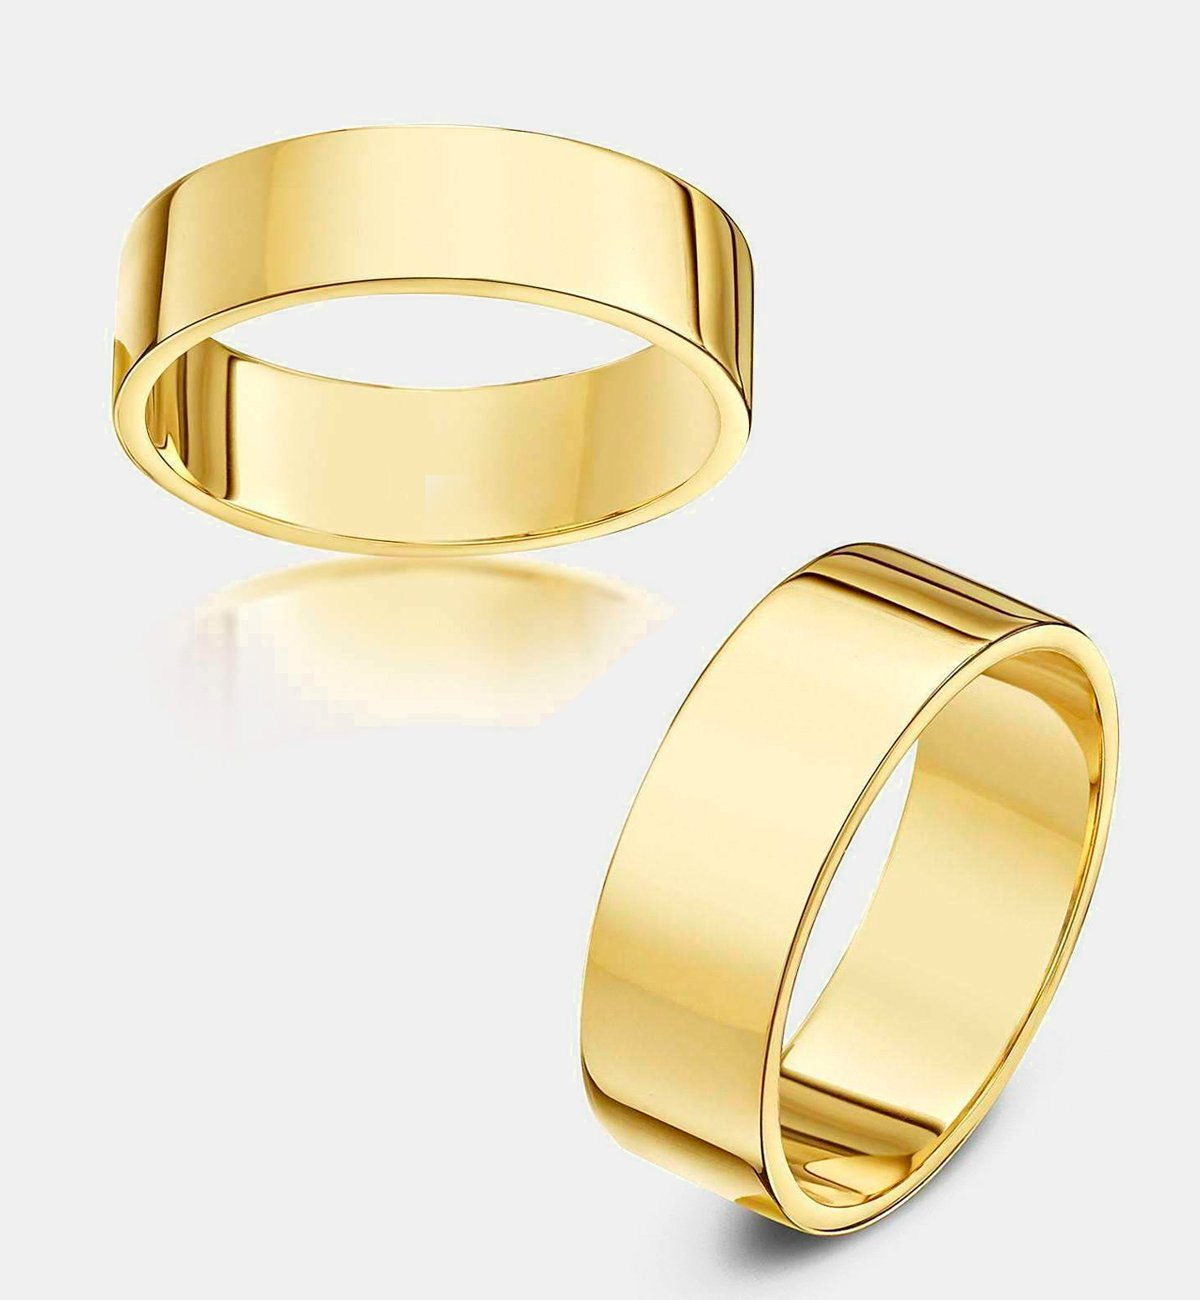 9kt Yellow Gold Heavy Flat Wedding Ring